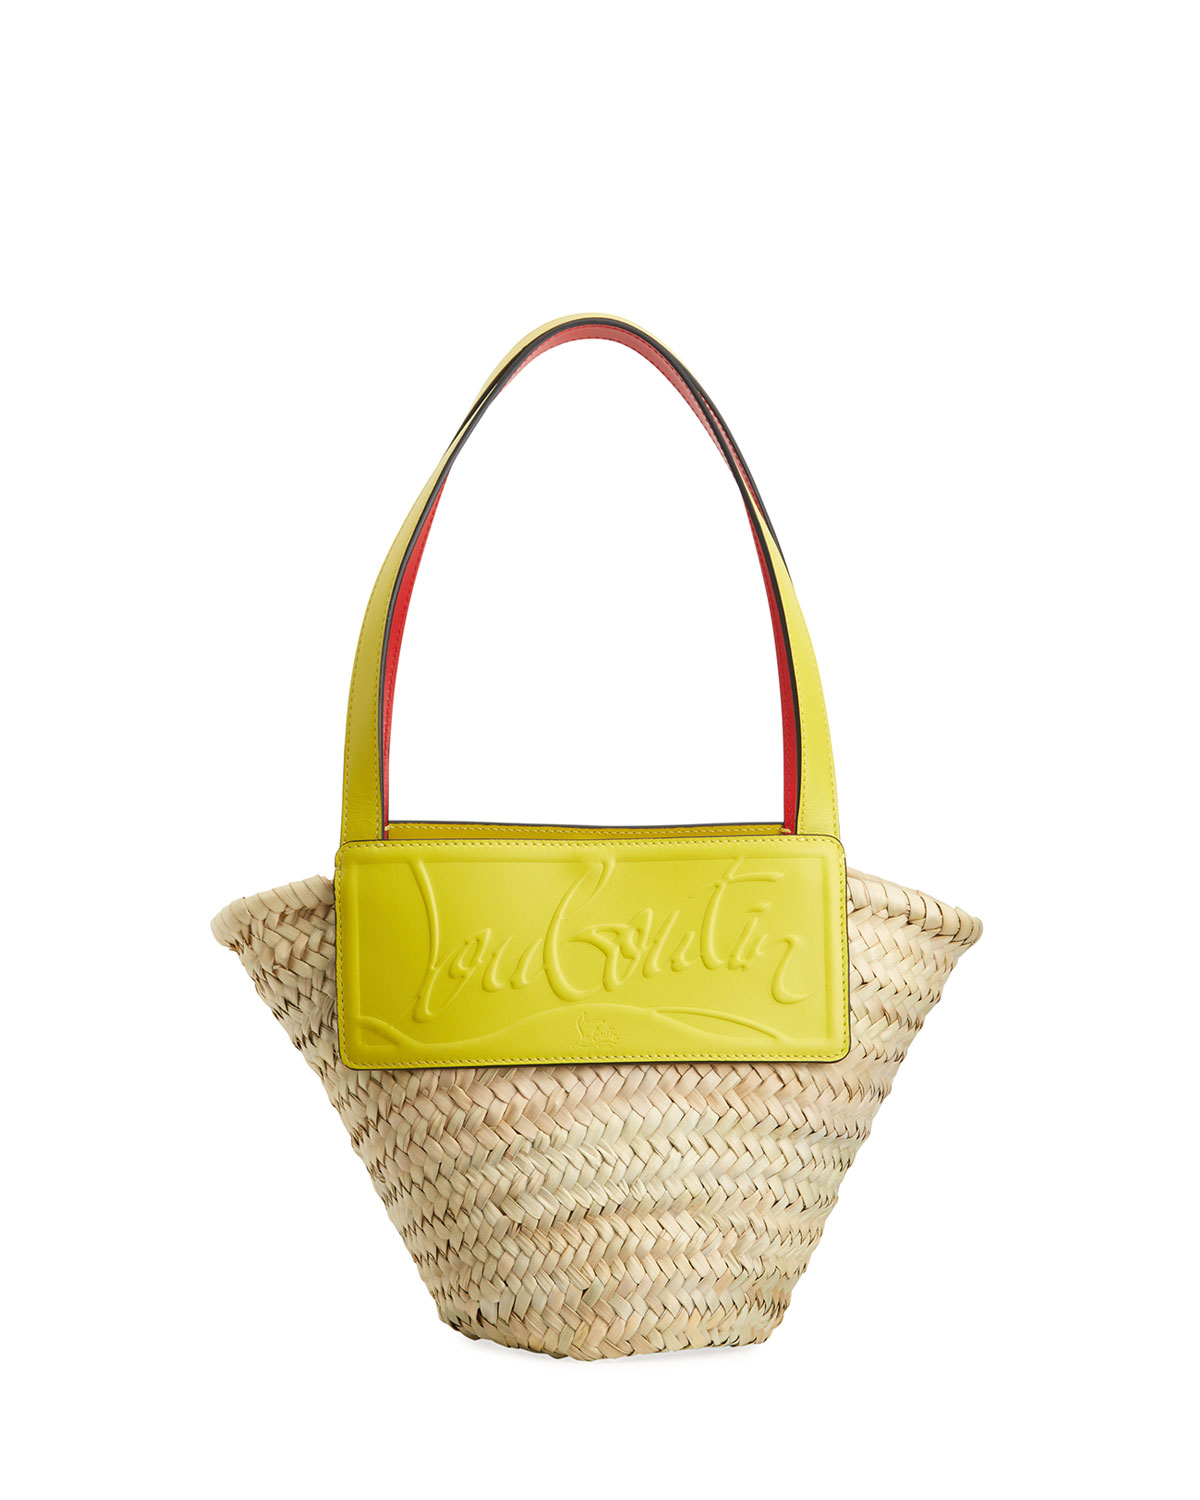 Christian Louboutin LOUBI SHORE SMALL WOVEN STRAW BEACH TOTE BAG